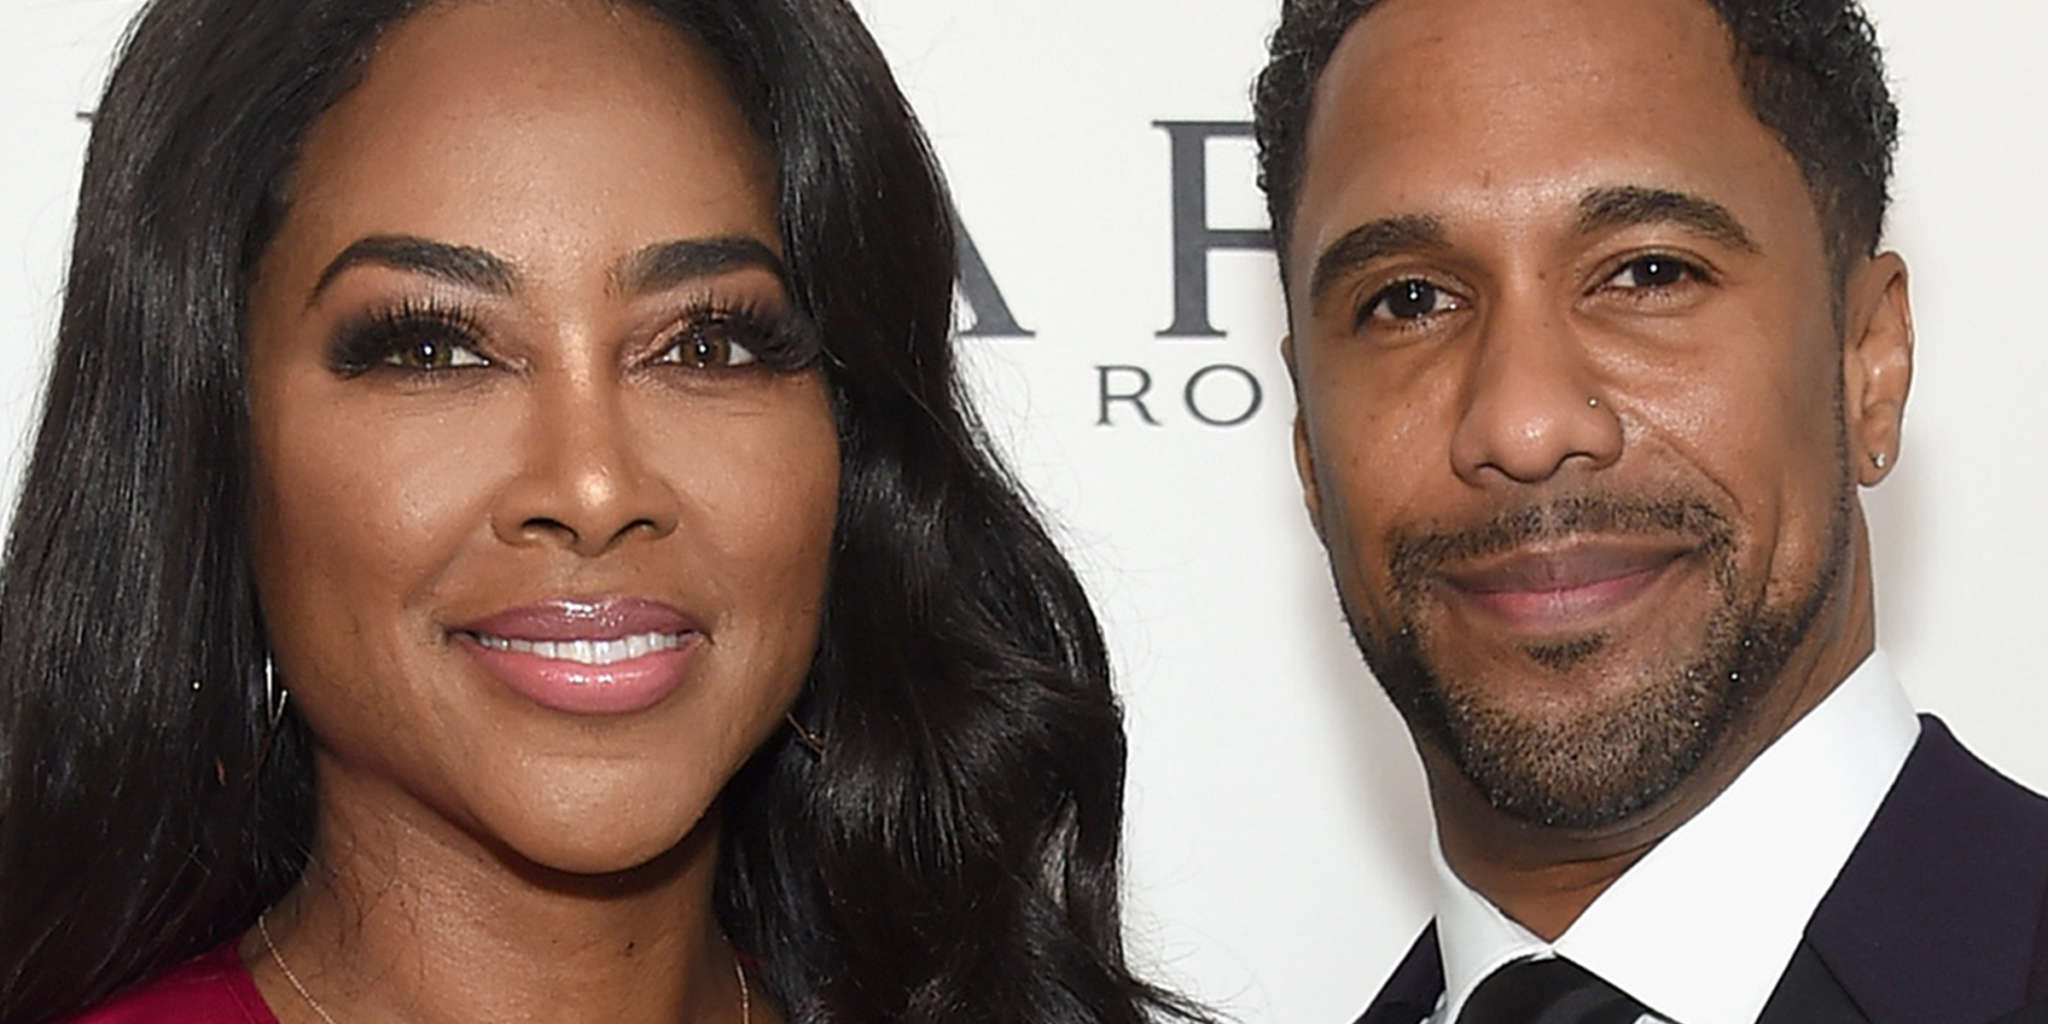 Kenya Moore's Photo With Marc Daly And Their Baby Brooklyn Has Fans In Awe - Her Story Inspires People